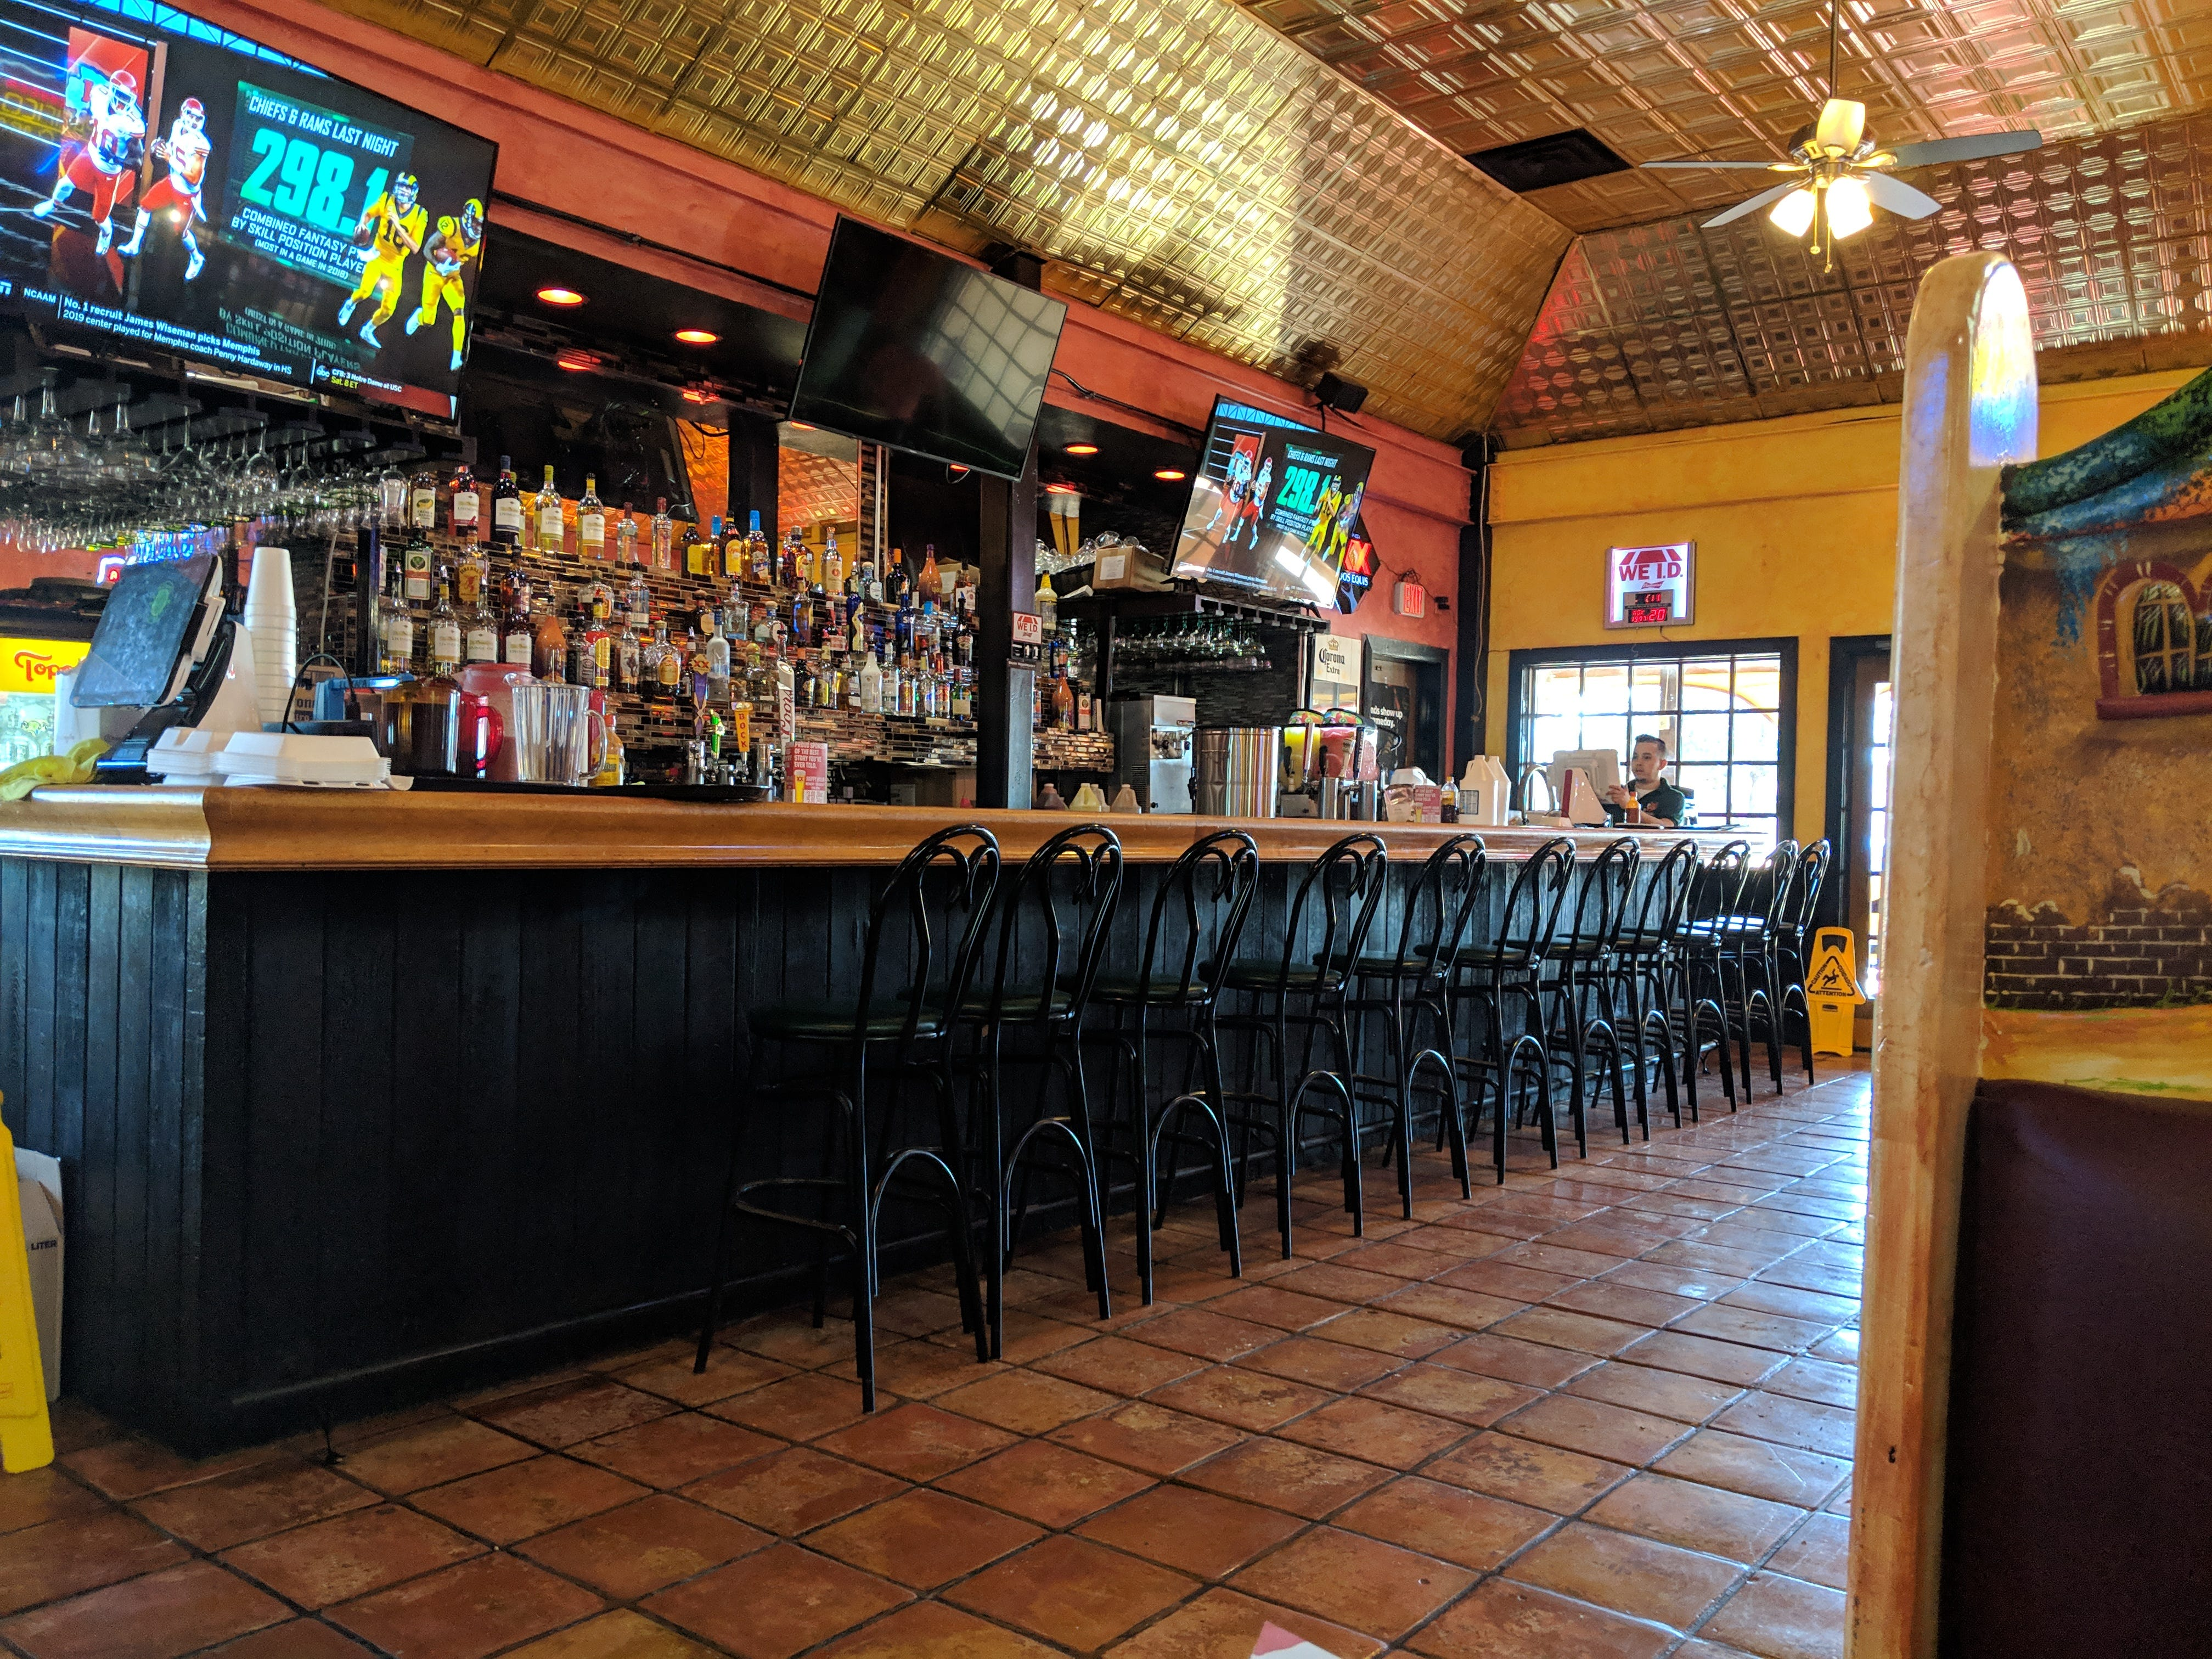 The bar area inside El Tapatio Authentic Mexican Restaurant.